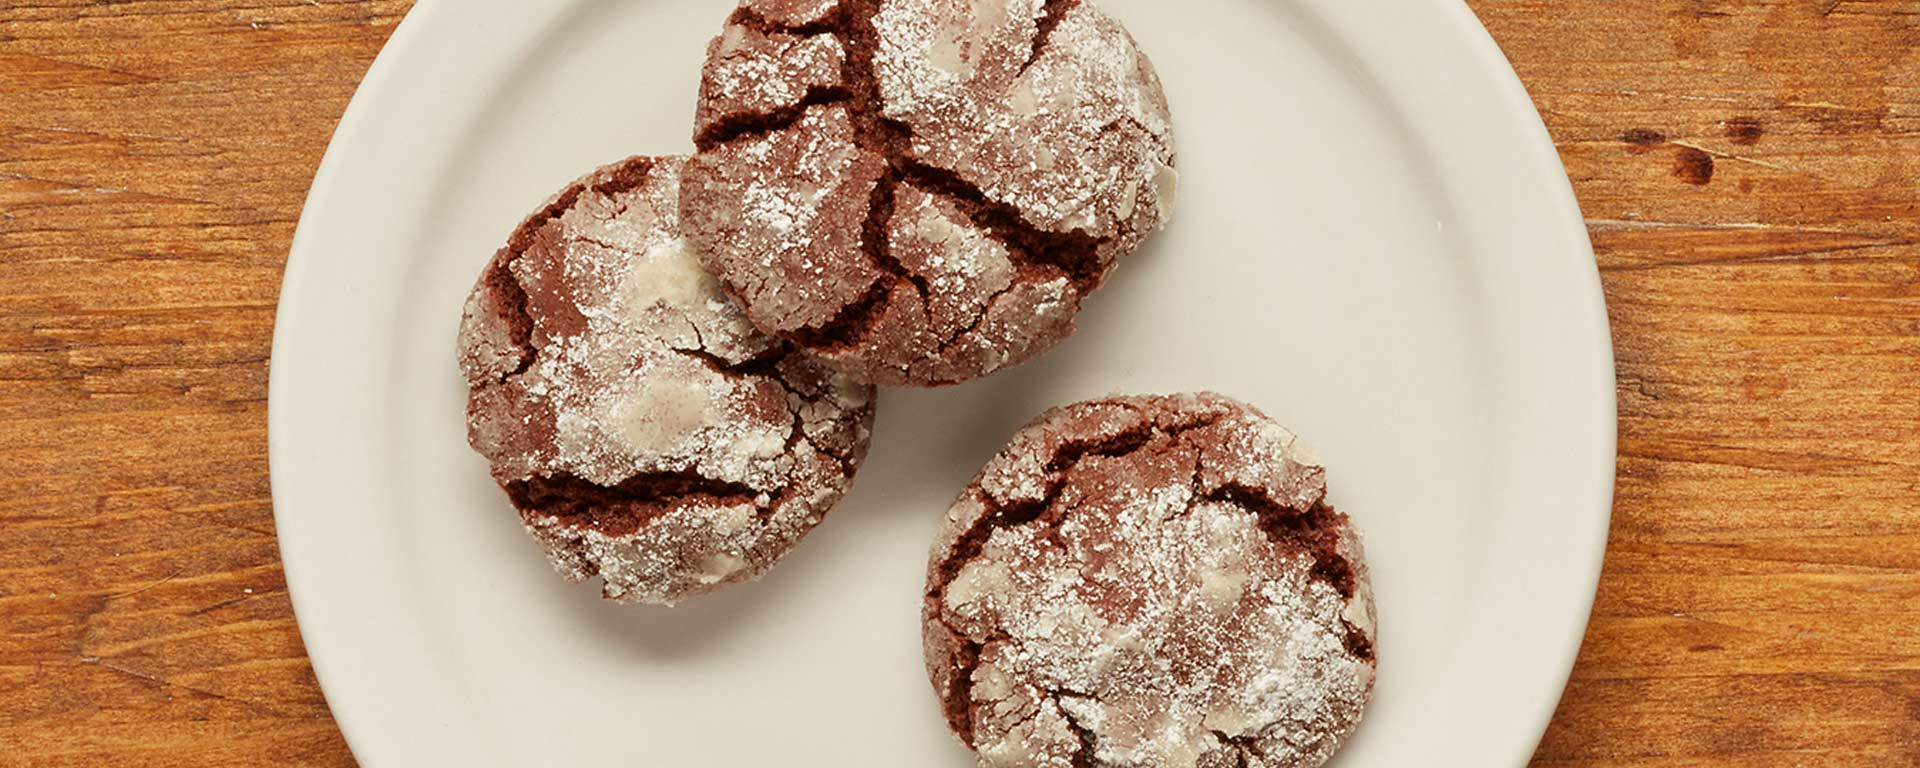 Photo for - Chocolate Chai Spiced Crinkle Cookies